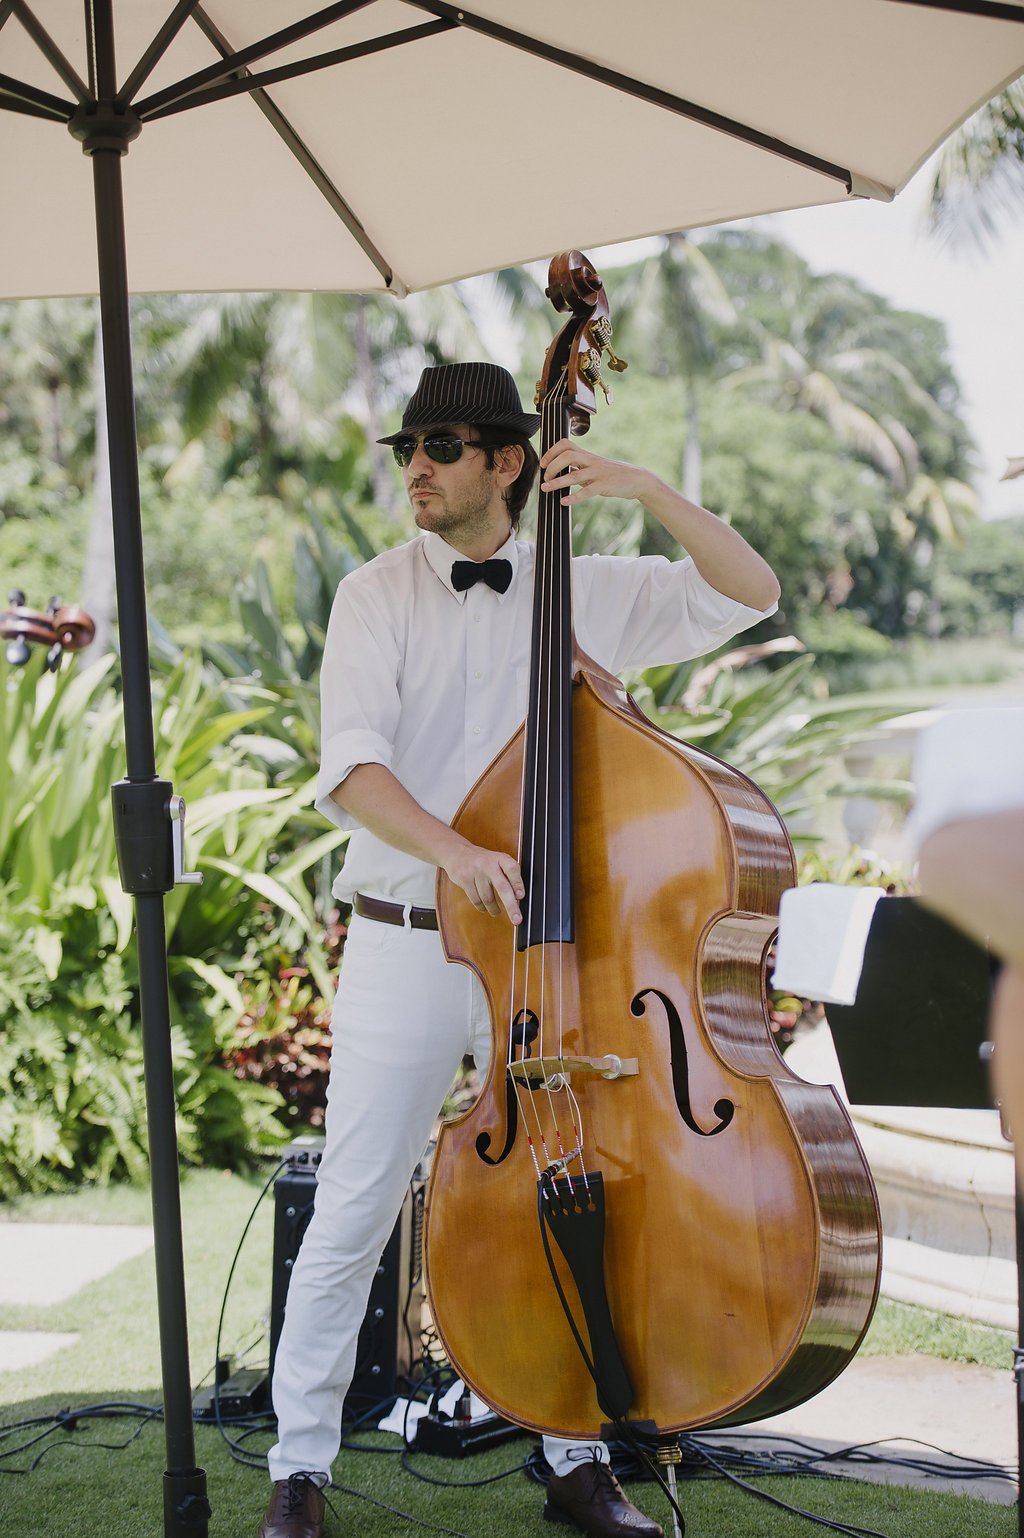 Main in sunglasses and hat playing a cello outside in the shade